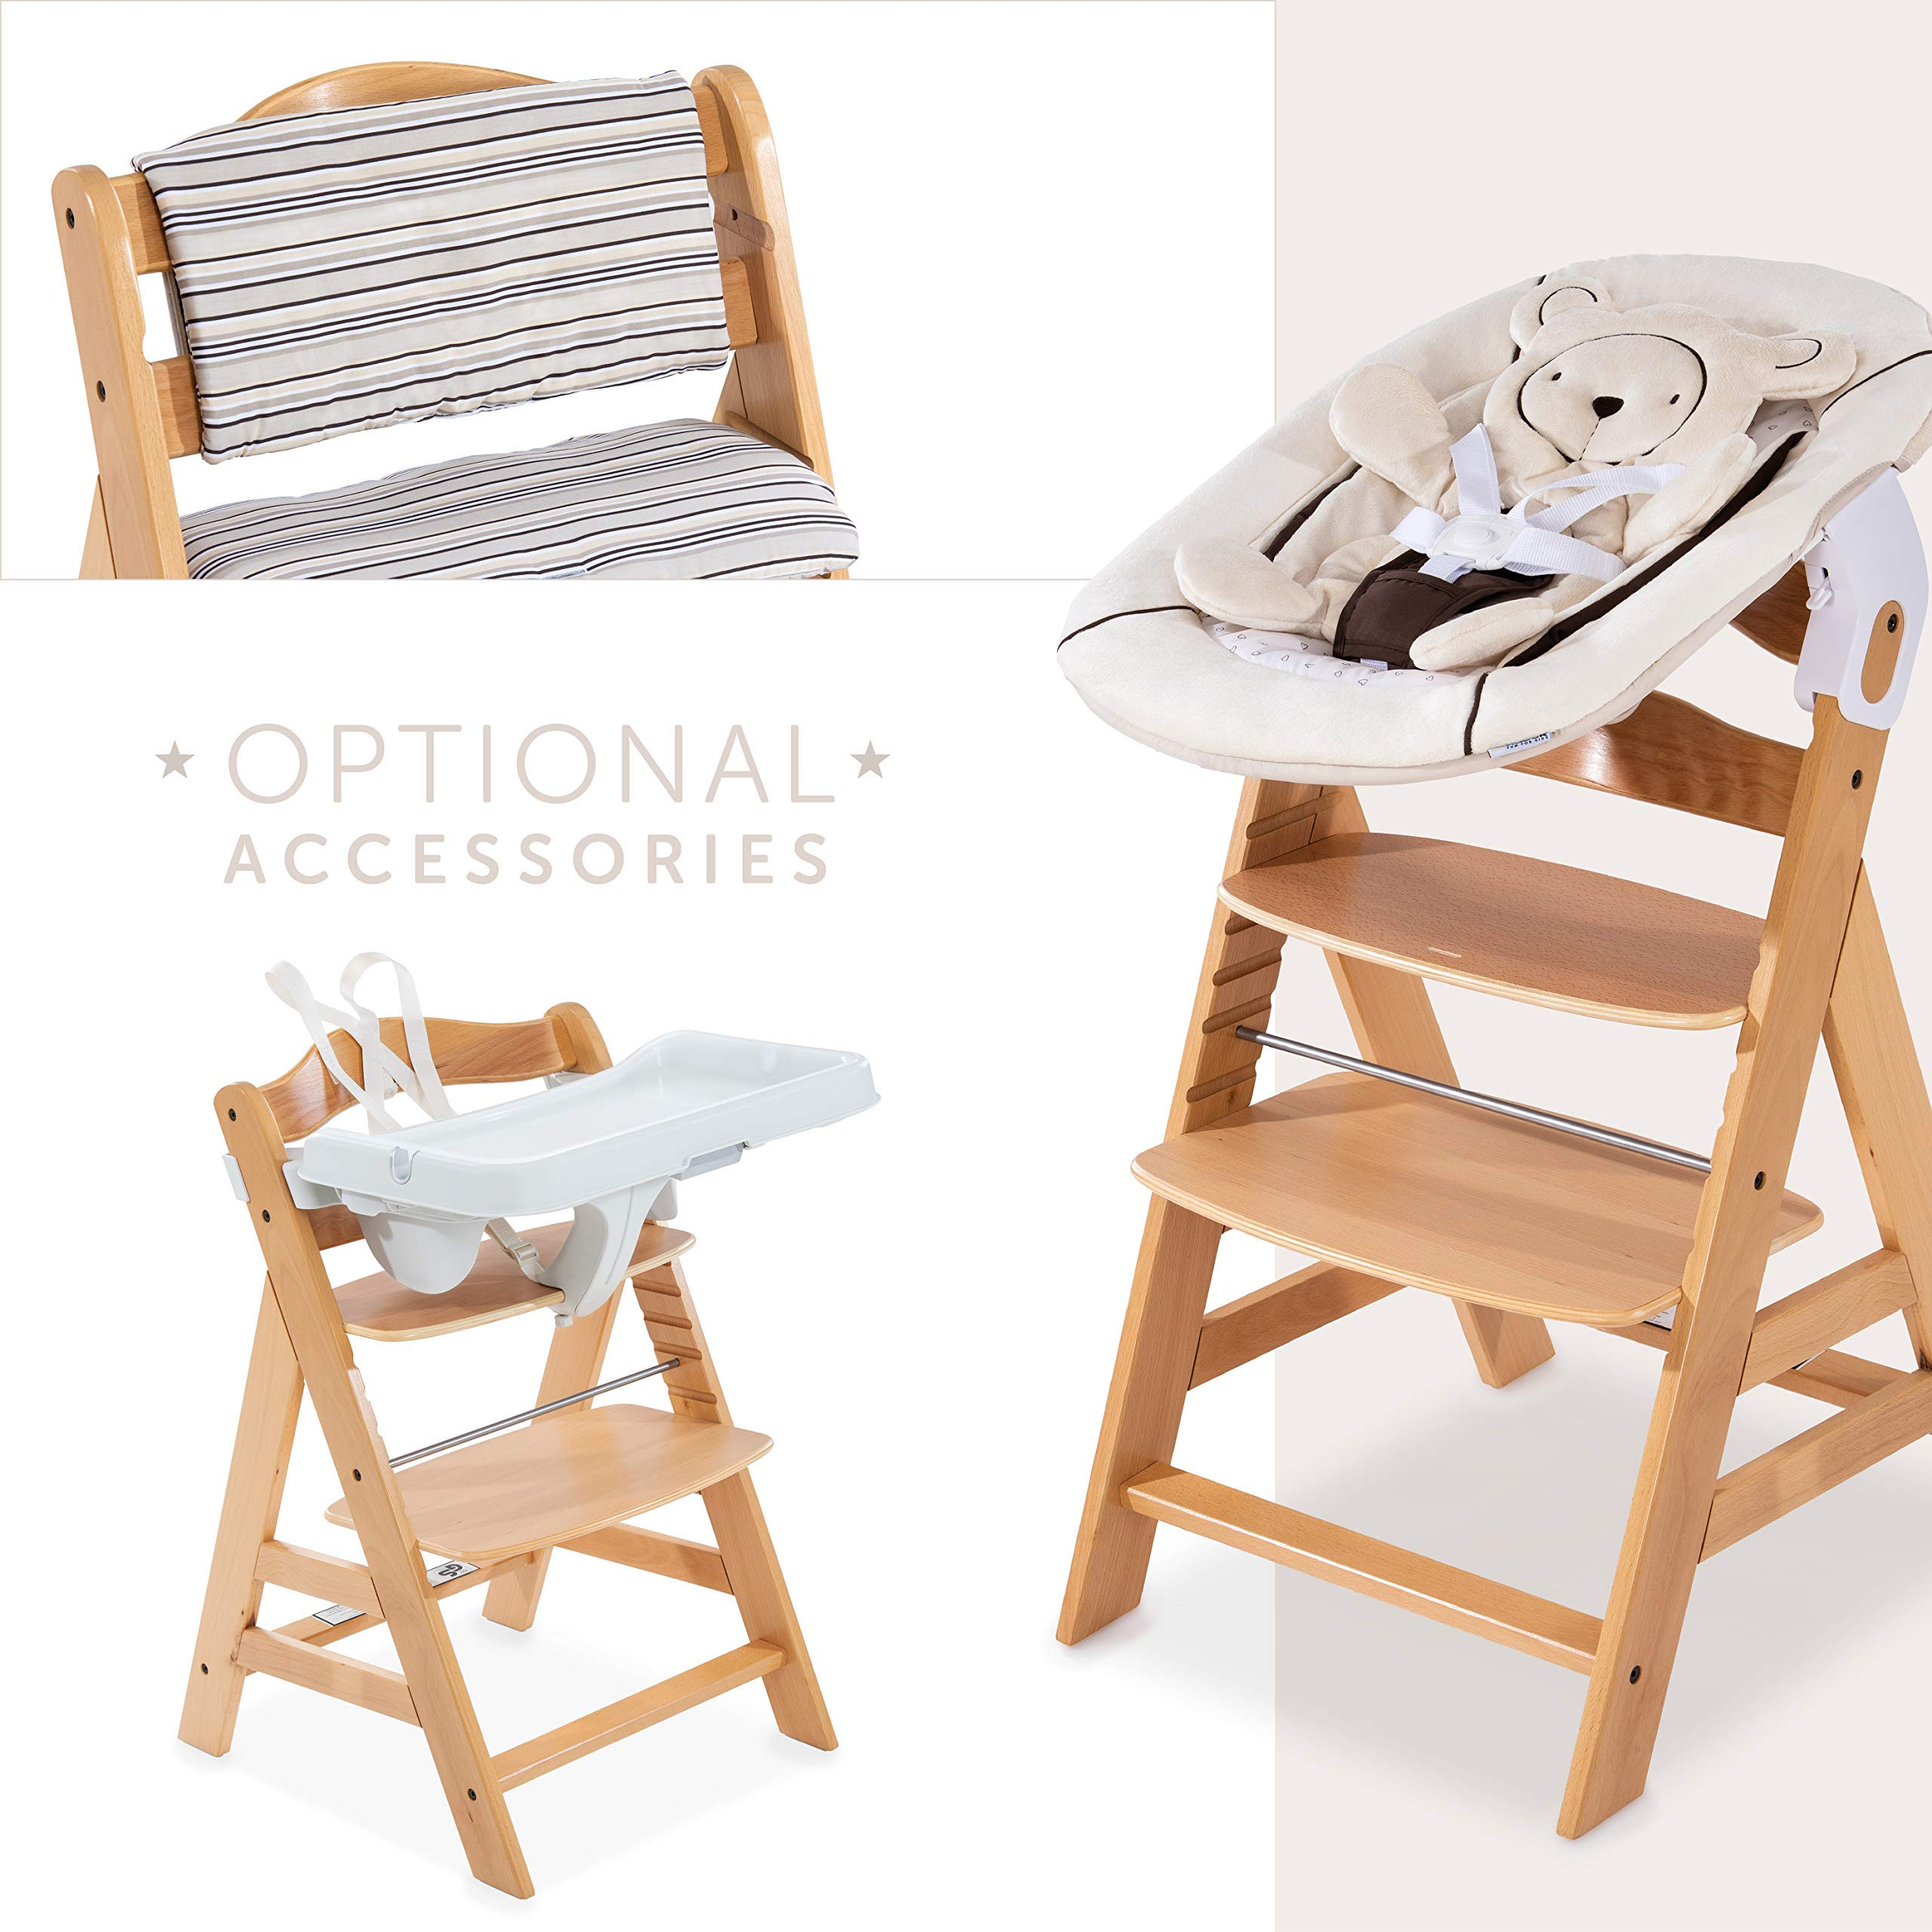 Hauck Alpha Wooden Height Adjustable Chair from 36 Months, Compatible with Hauck Alpha Bouncer from Birth, Natural by Hauck - Fun for Kids